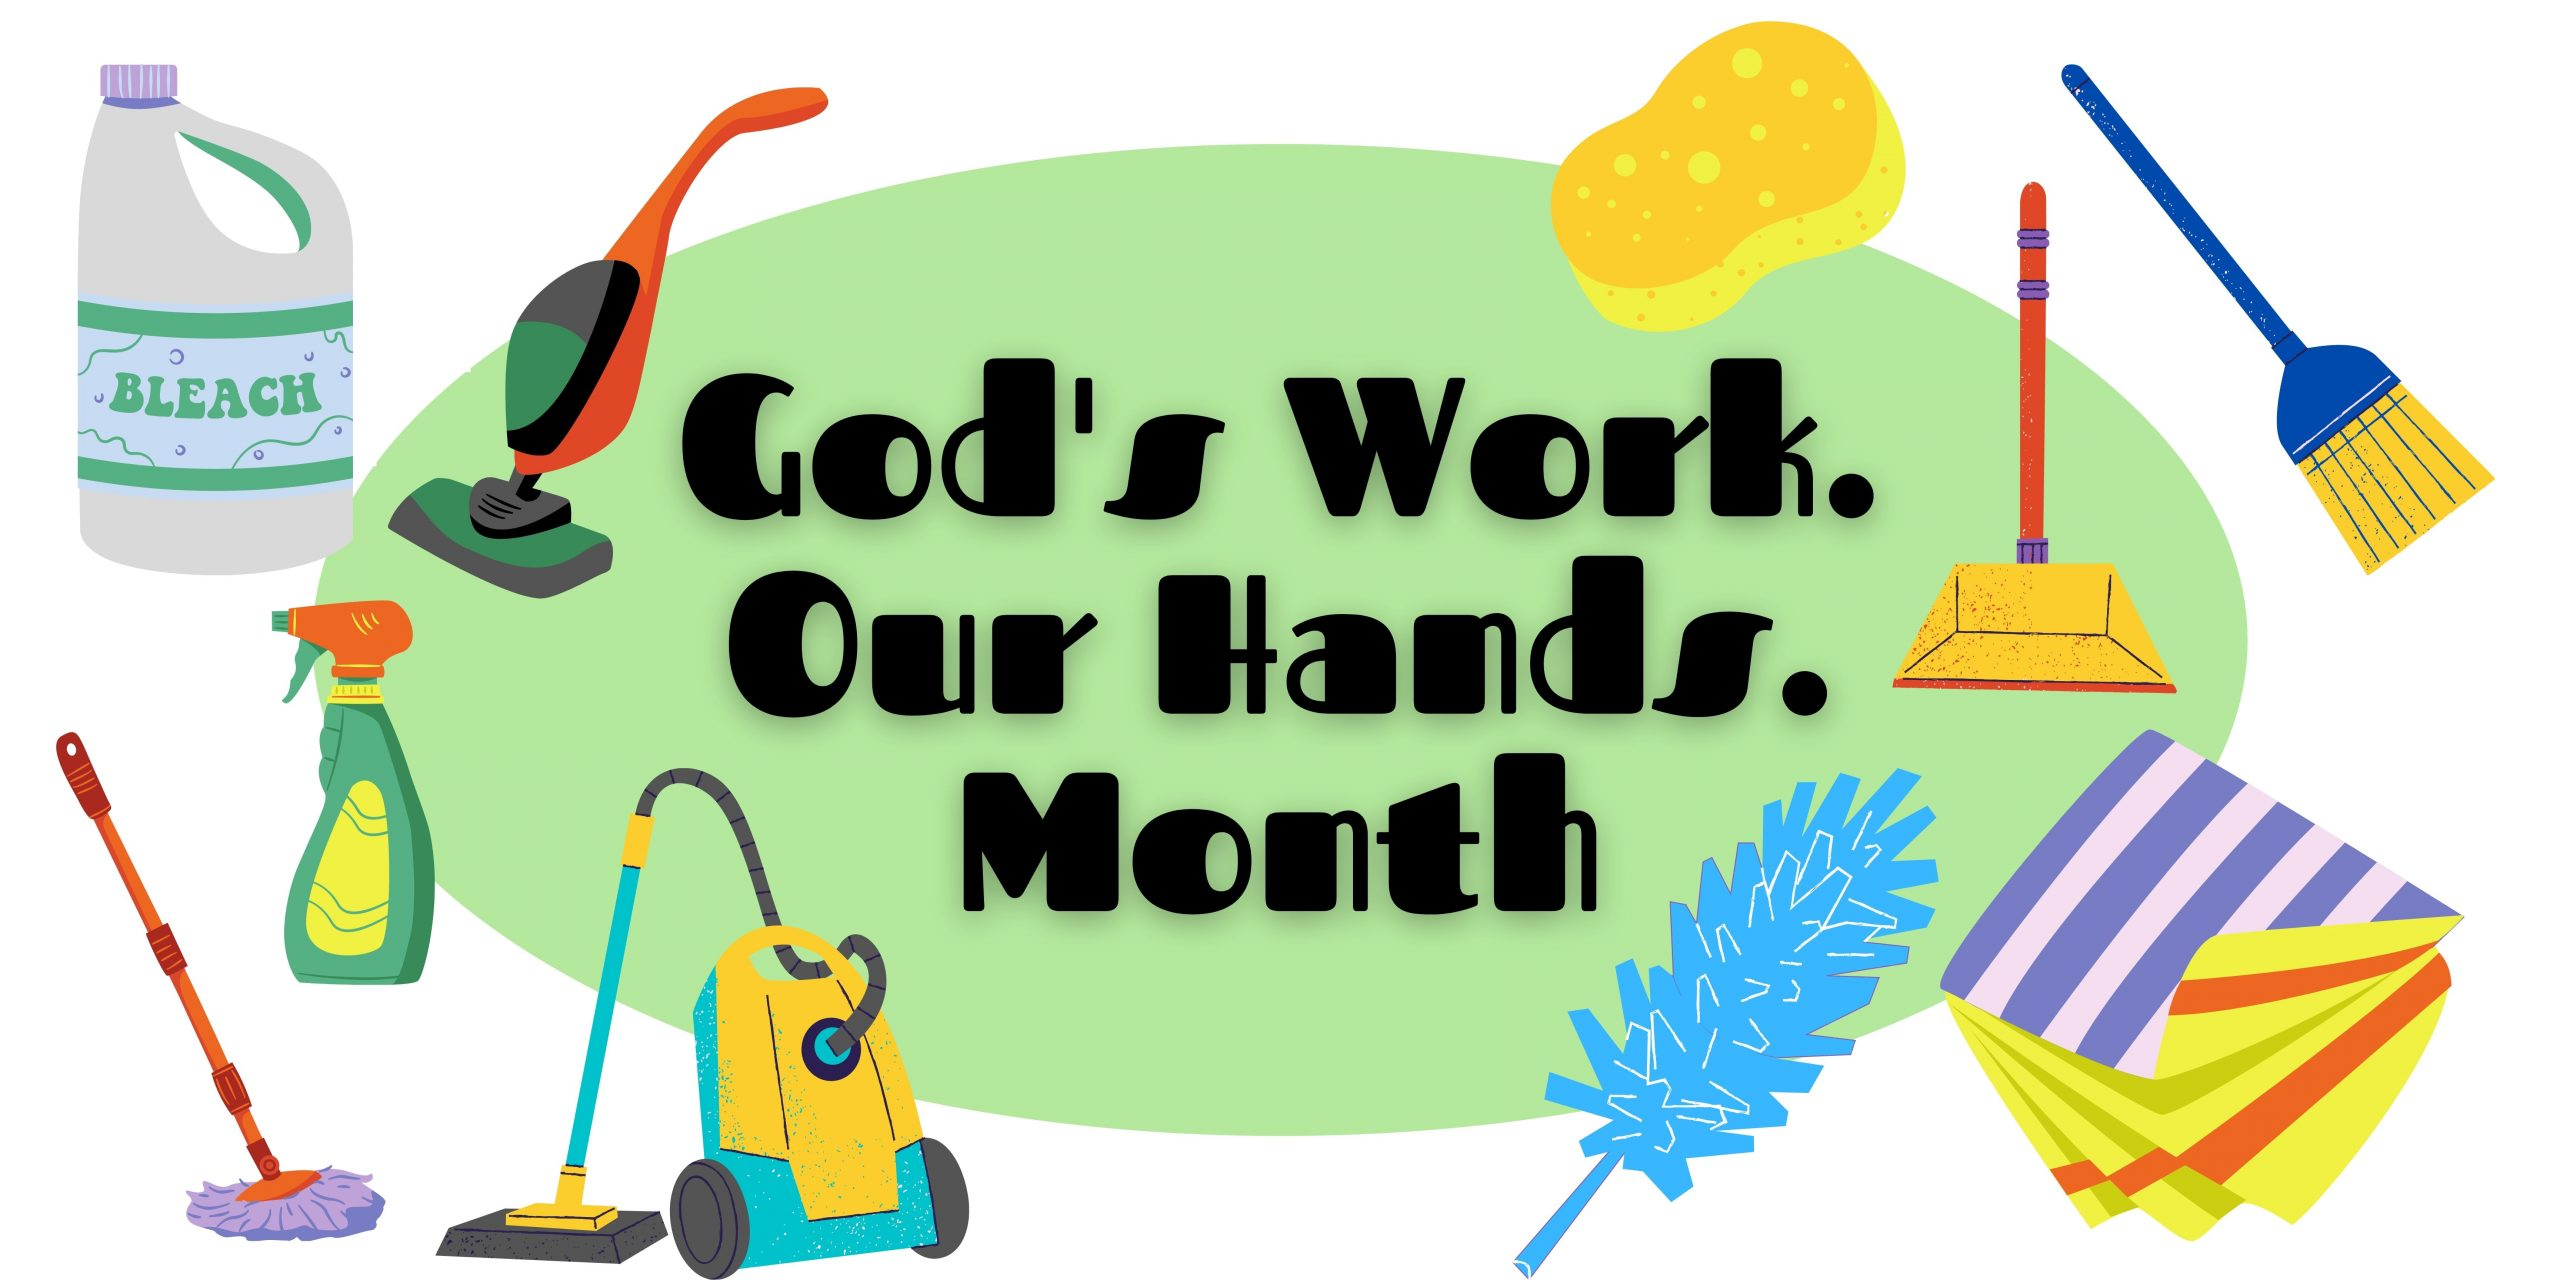 God-Work-Our-Hands-Month-scaled